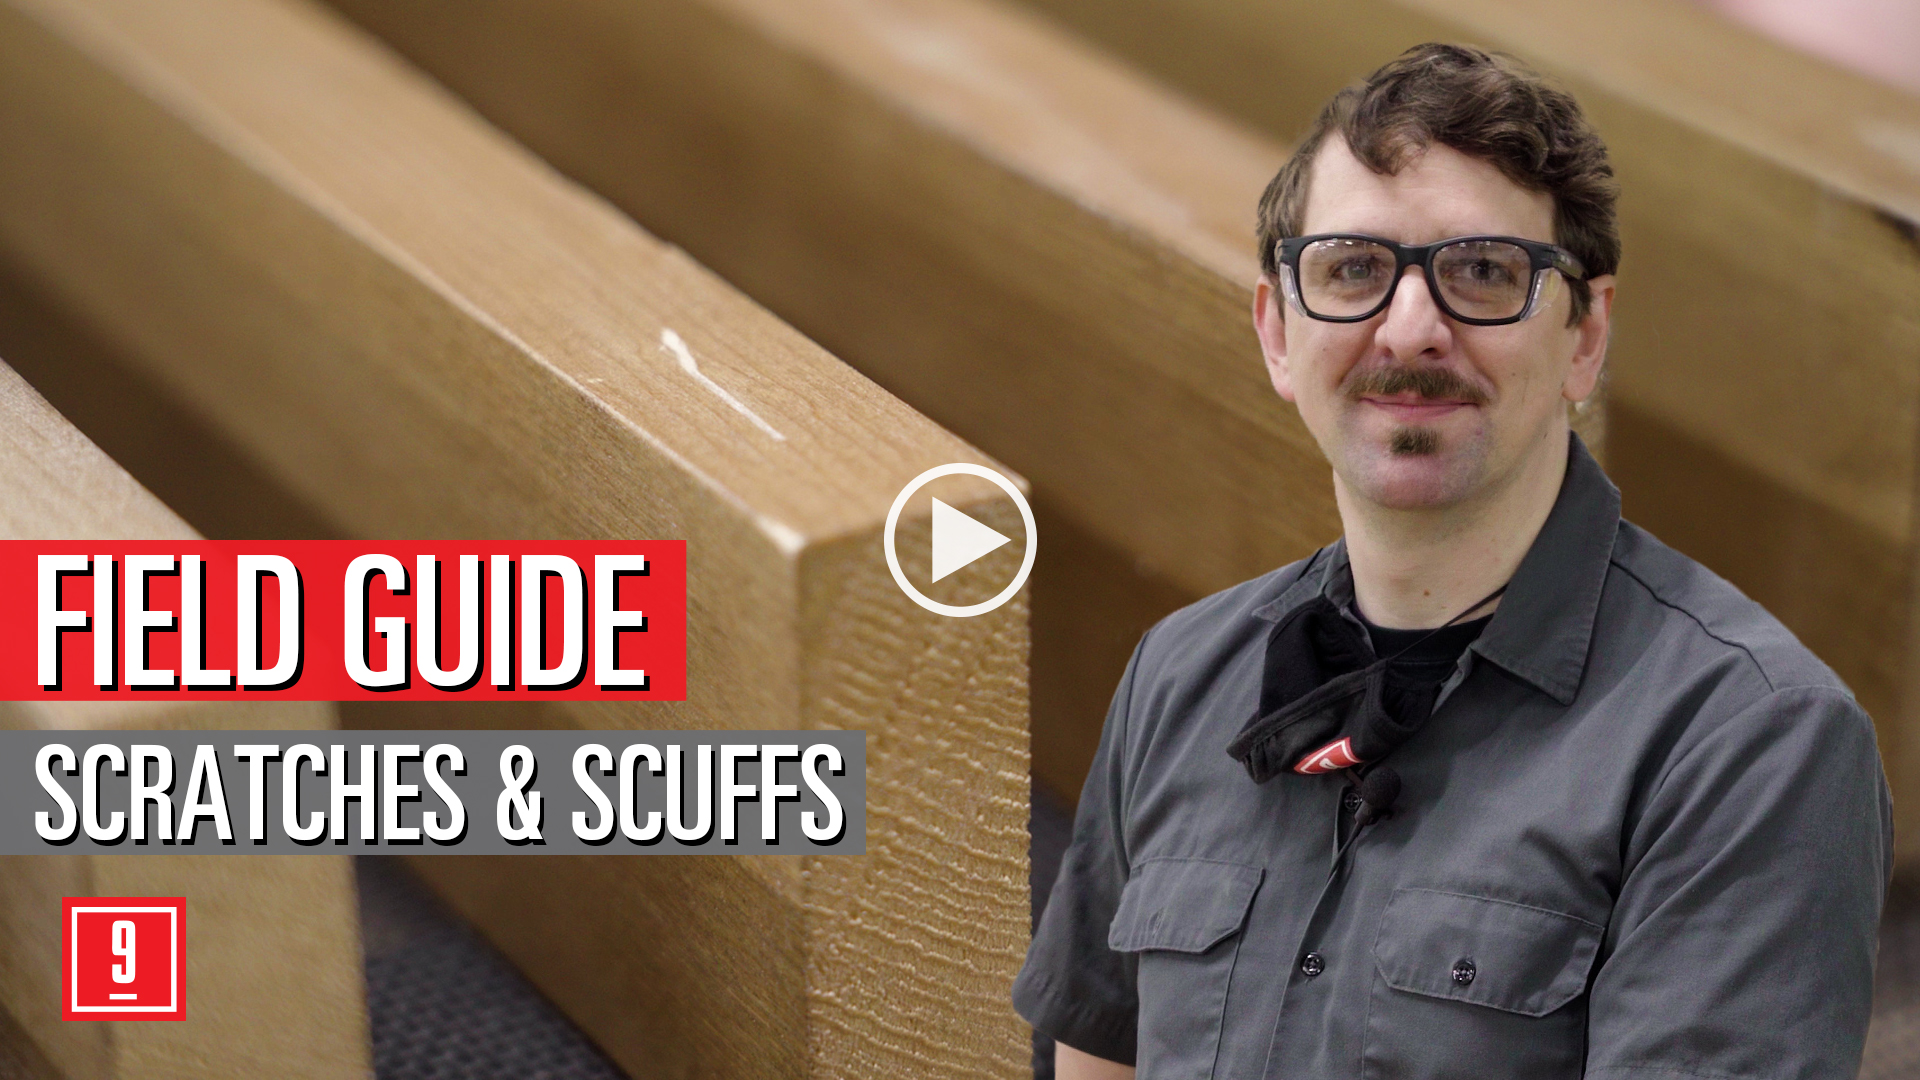 9Wood Field guide - repairing scratches and scuffs for wood ceilings